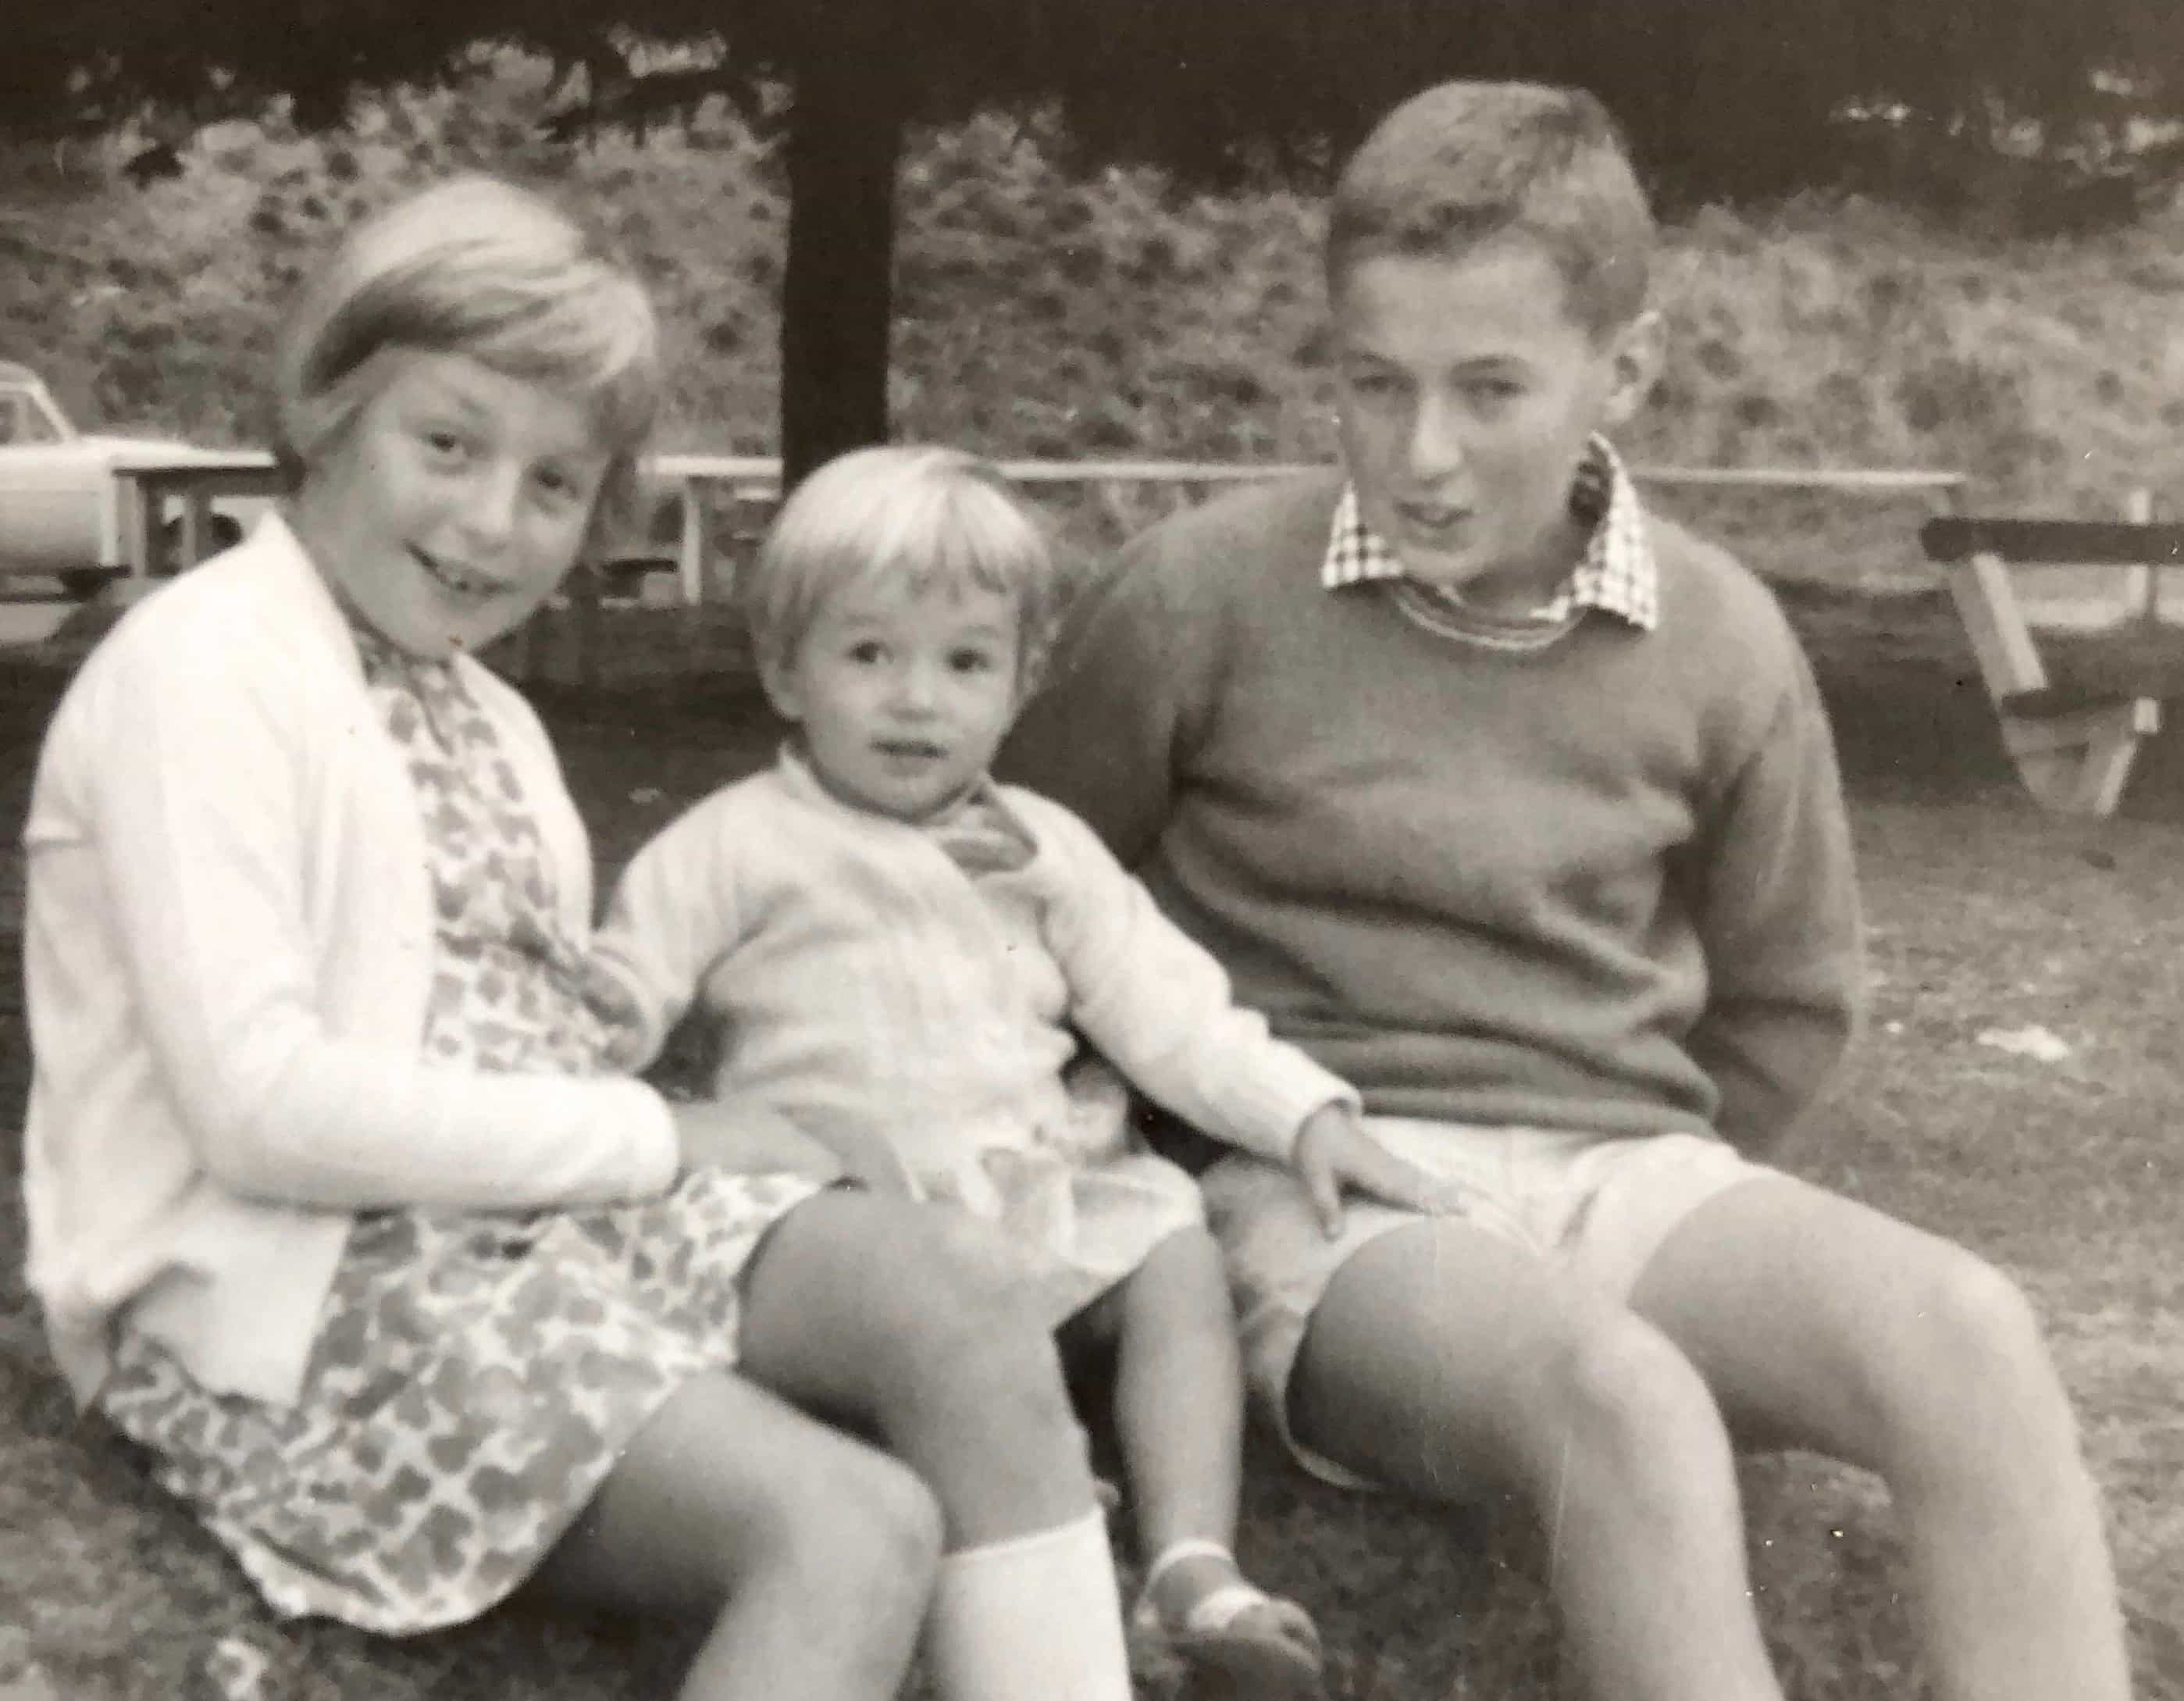 Me in the middle. Sitting with my siblings.